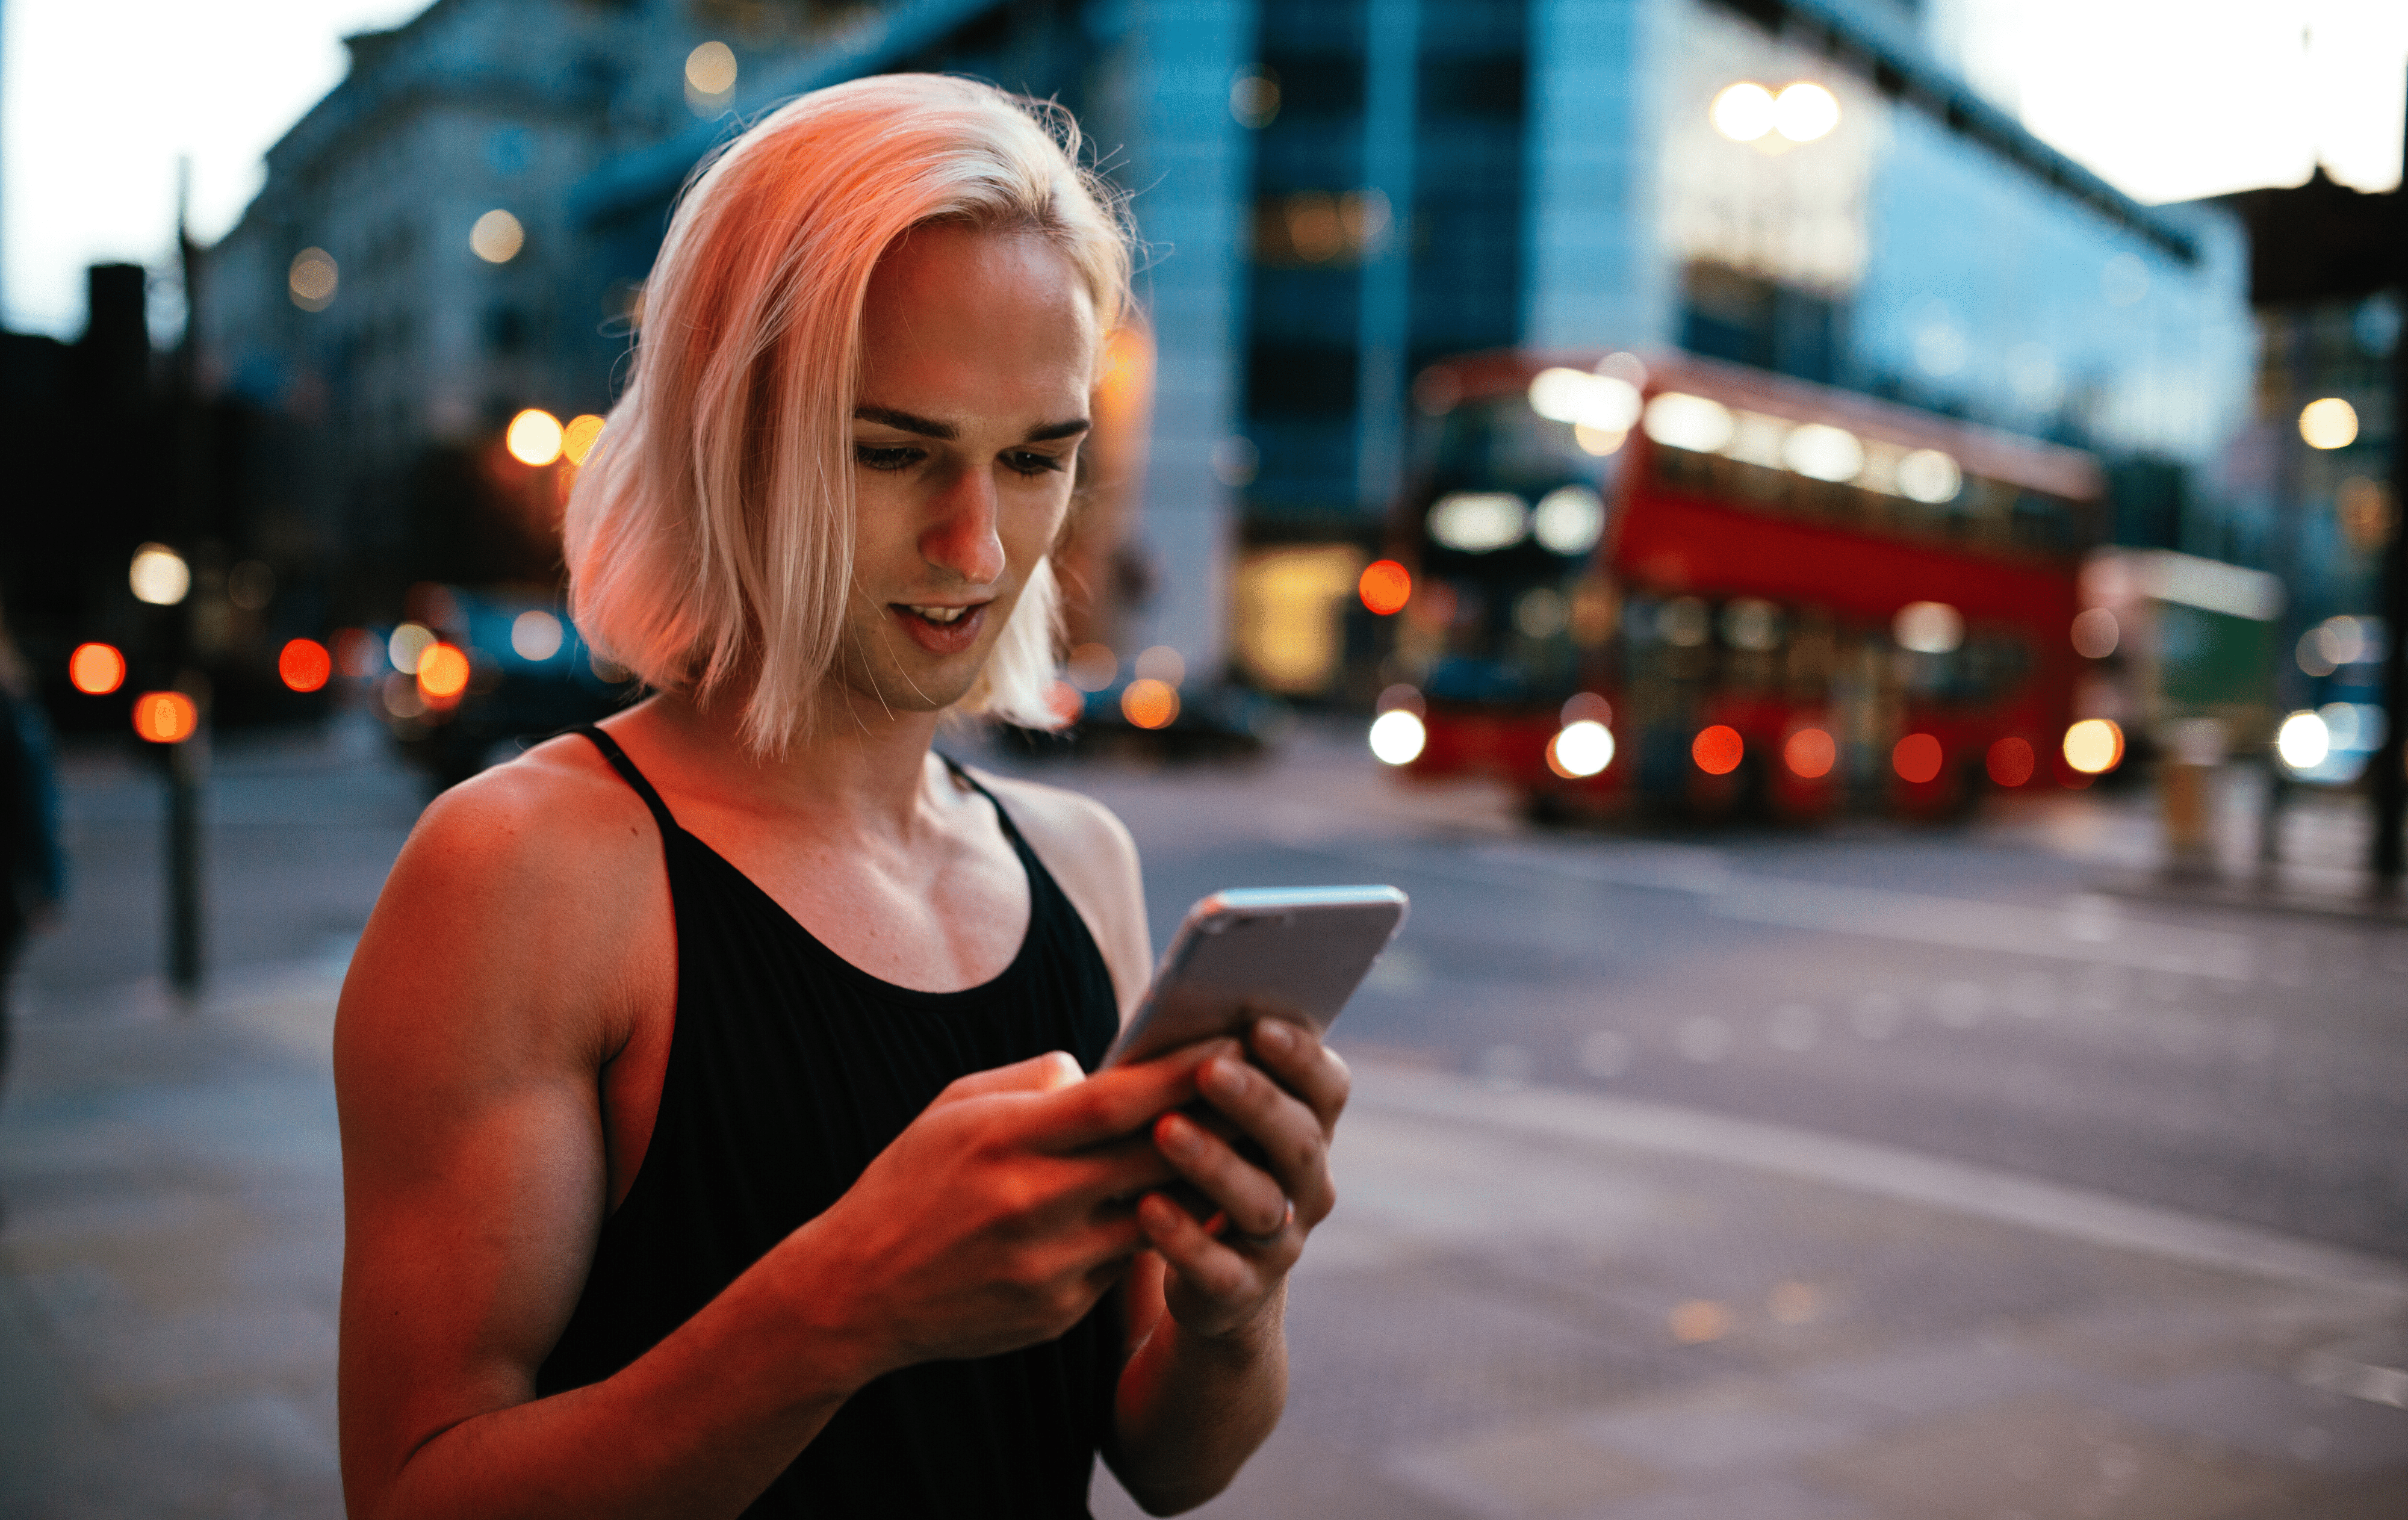 A non binary person with straight, soft blonde hair to their shoulders looking down at the phone screen they are holding in their hands. They are on a busy city street at dusk with a bus and traffic lights behind them. Their facial expression is engaged with what they are looking at with a slight, open-lipped smile.